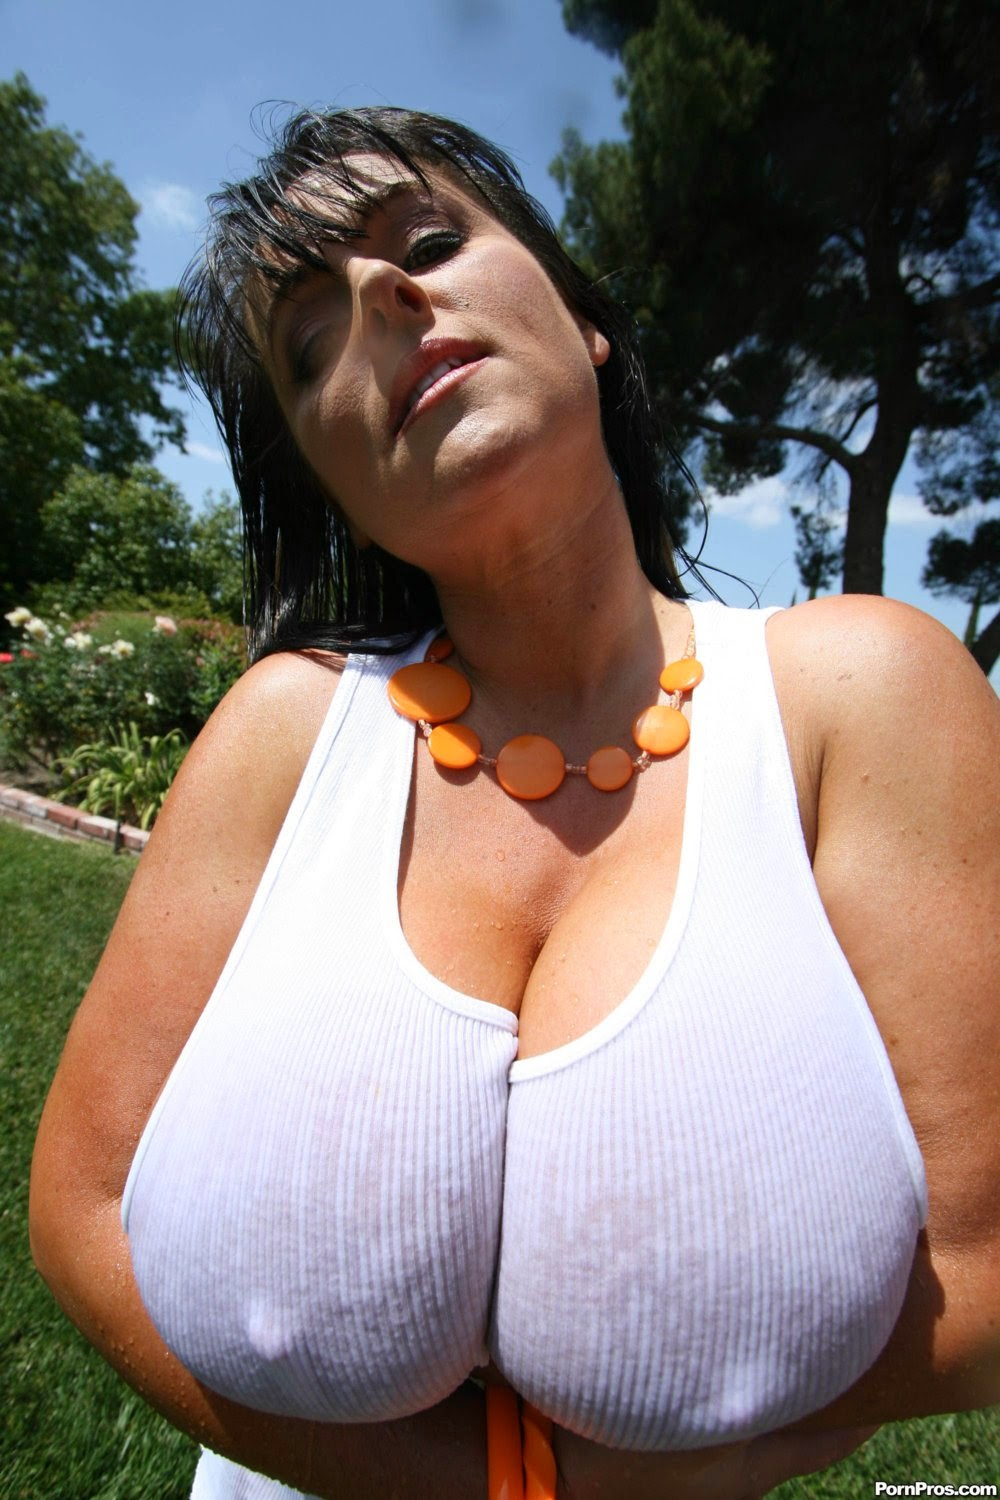 Older Women With Little Tits